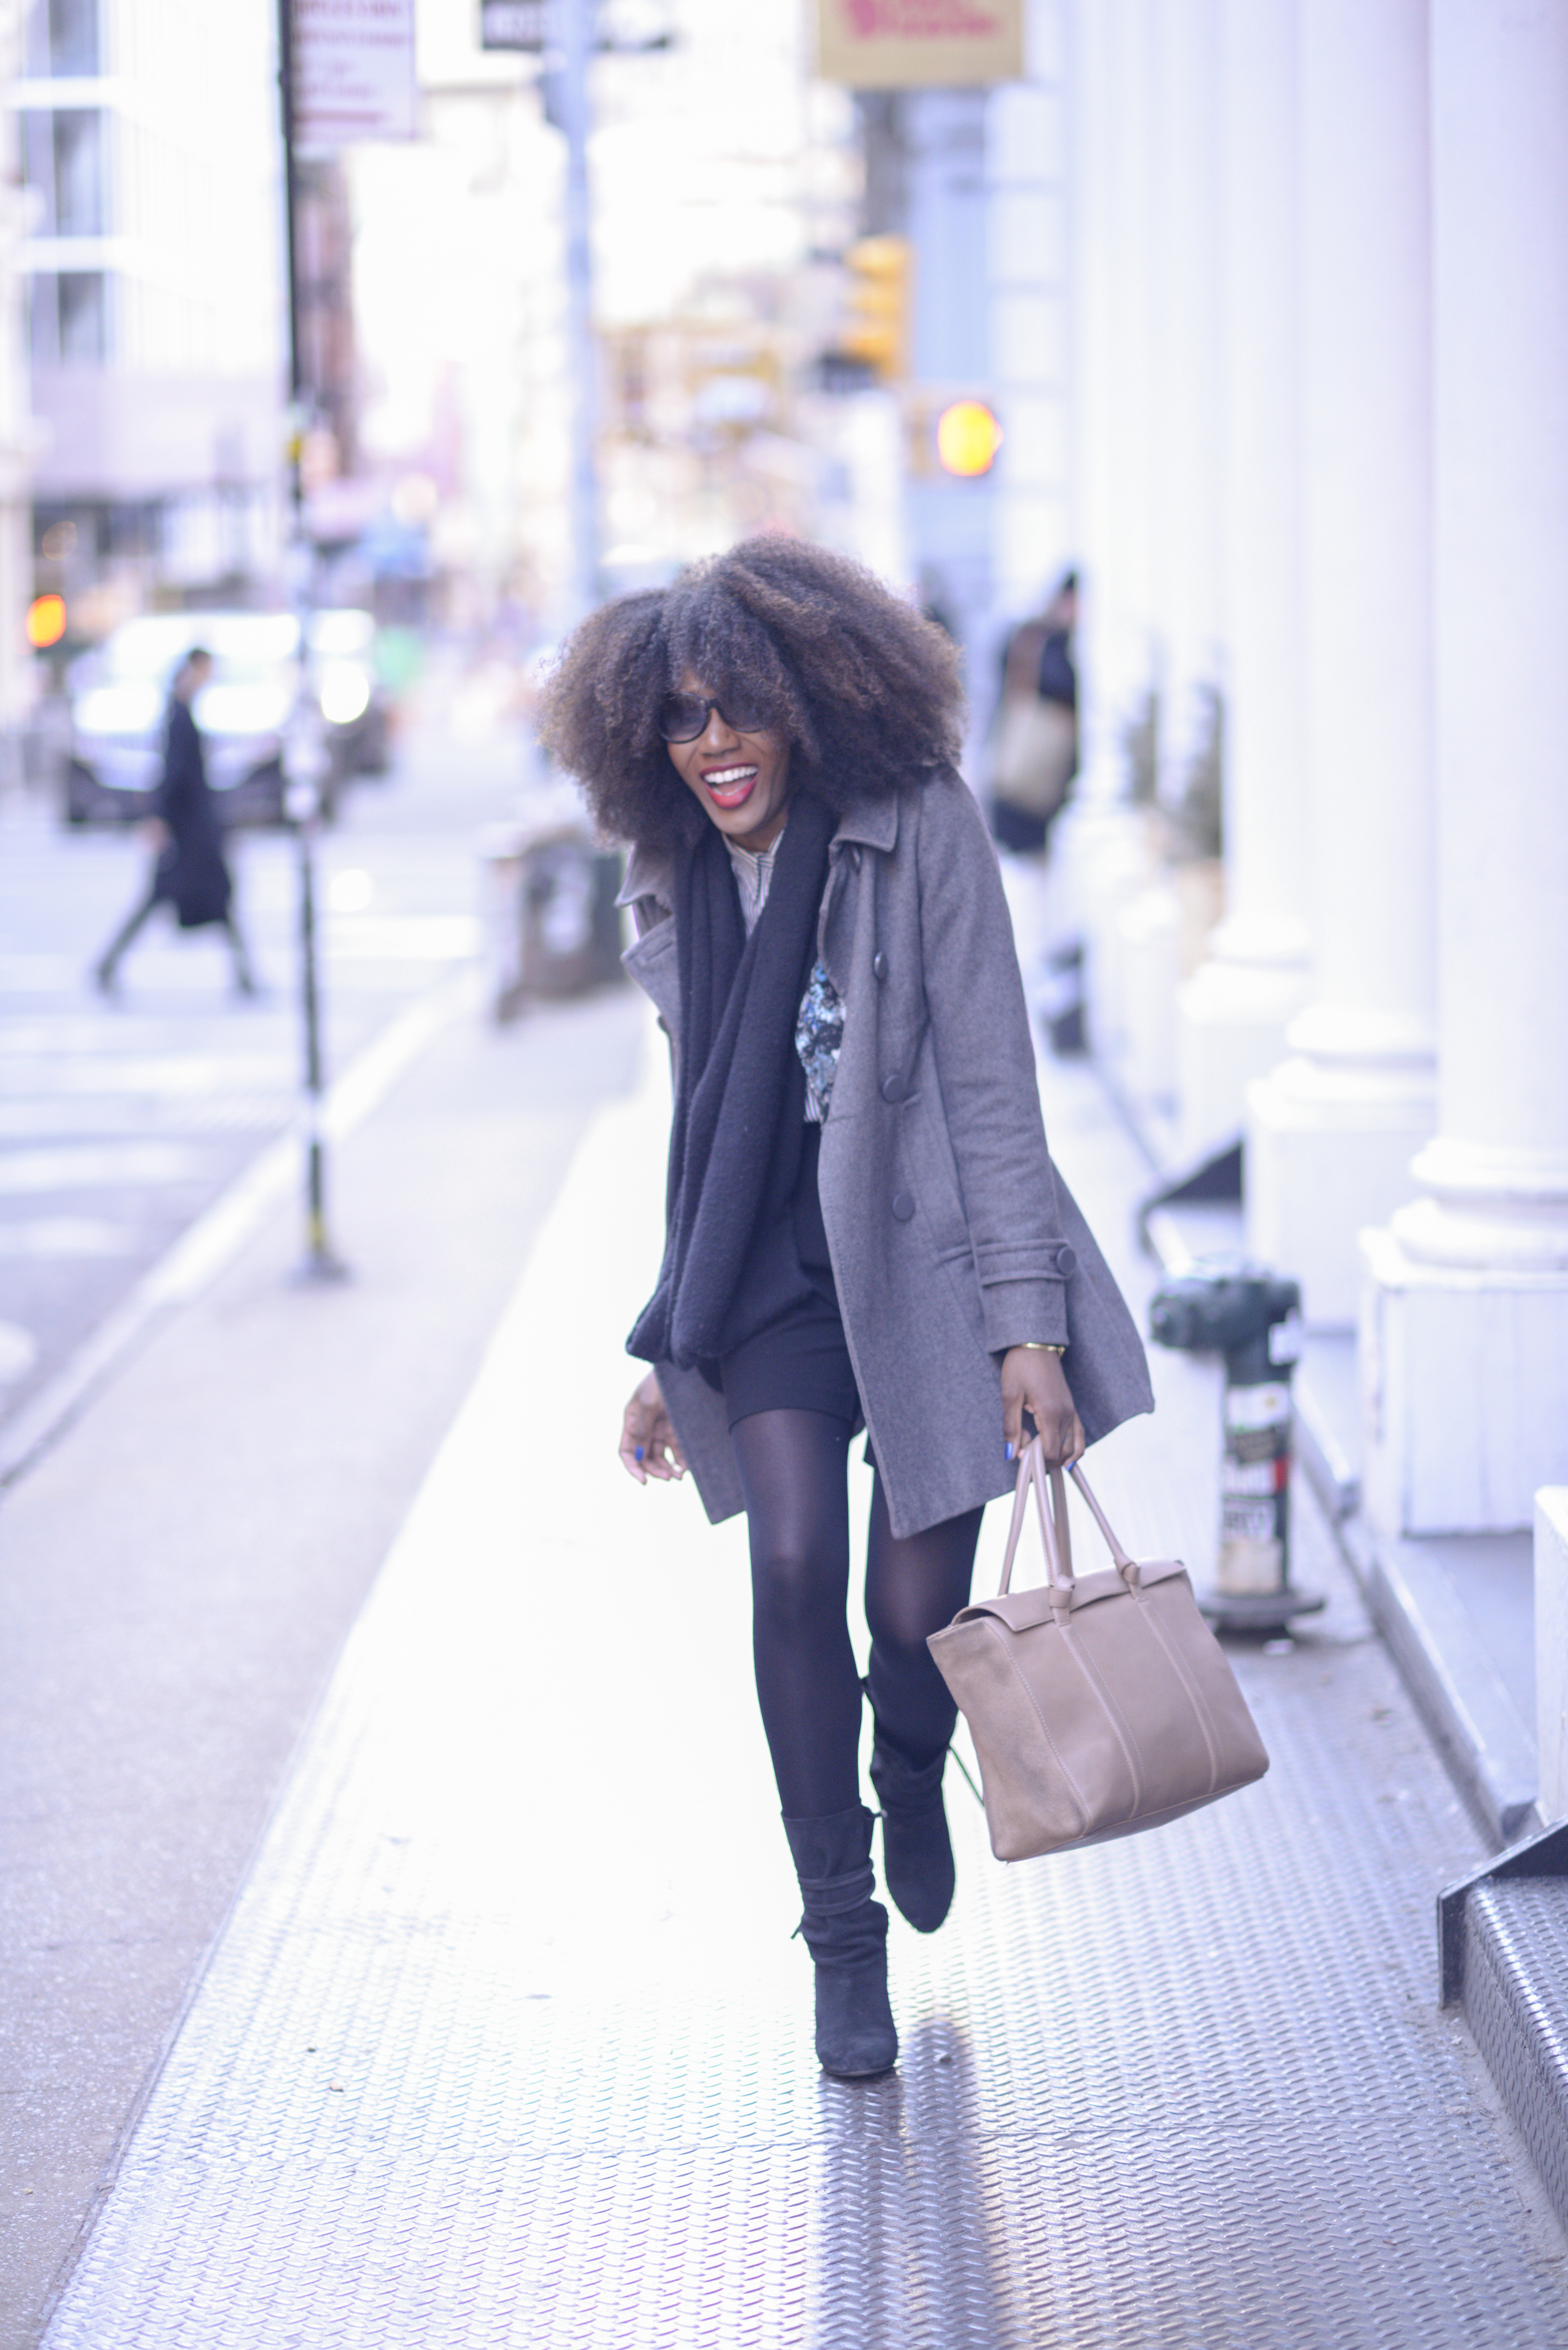 Raven is a recent import to NYC from Long Beach, Cali. Dope wardrobe stylist and has a truly dope sense of style... But her hair takes the cake! It is pretty frikkin amazing.  Check her out  HERE